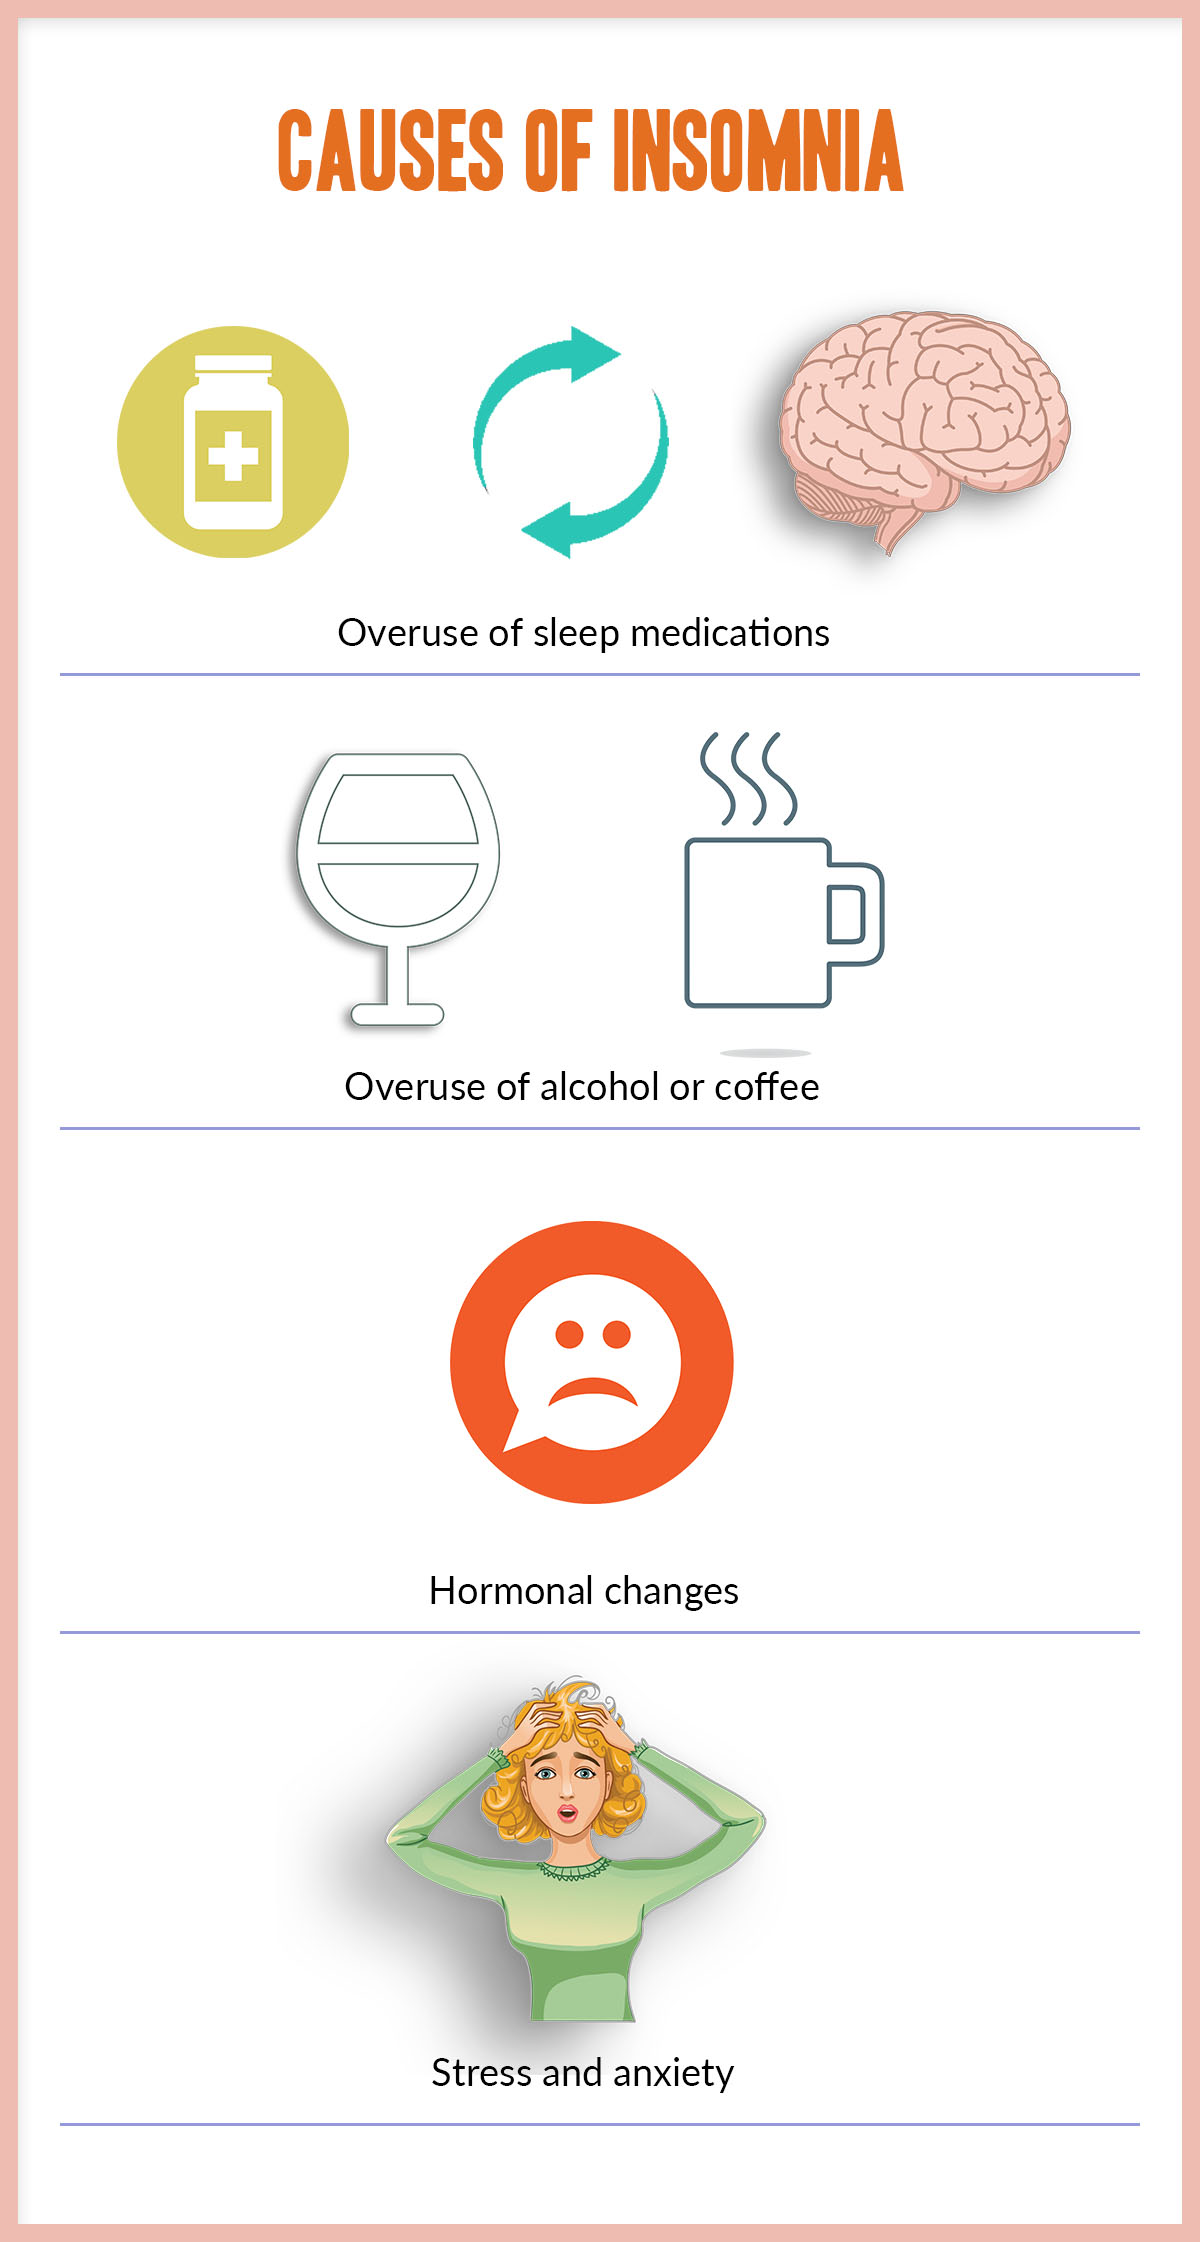 Things that cause sleeping problems